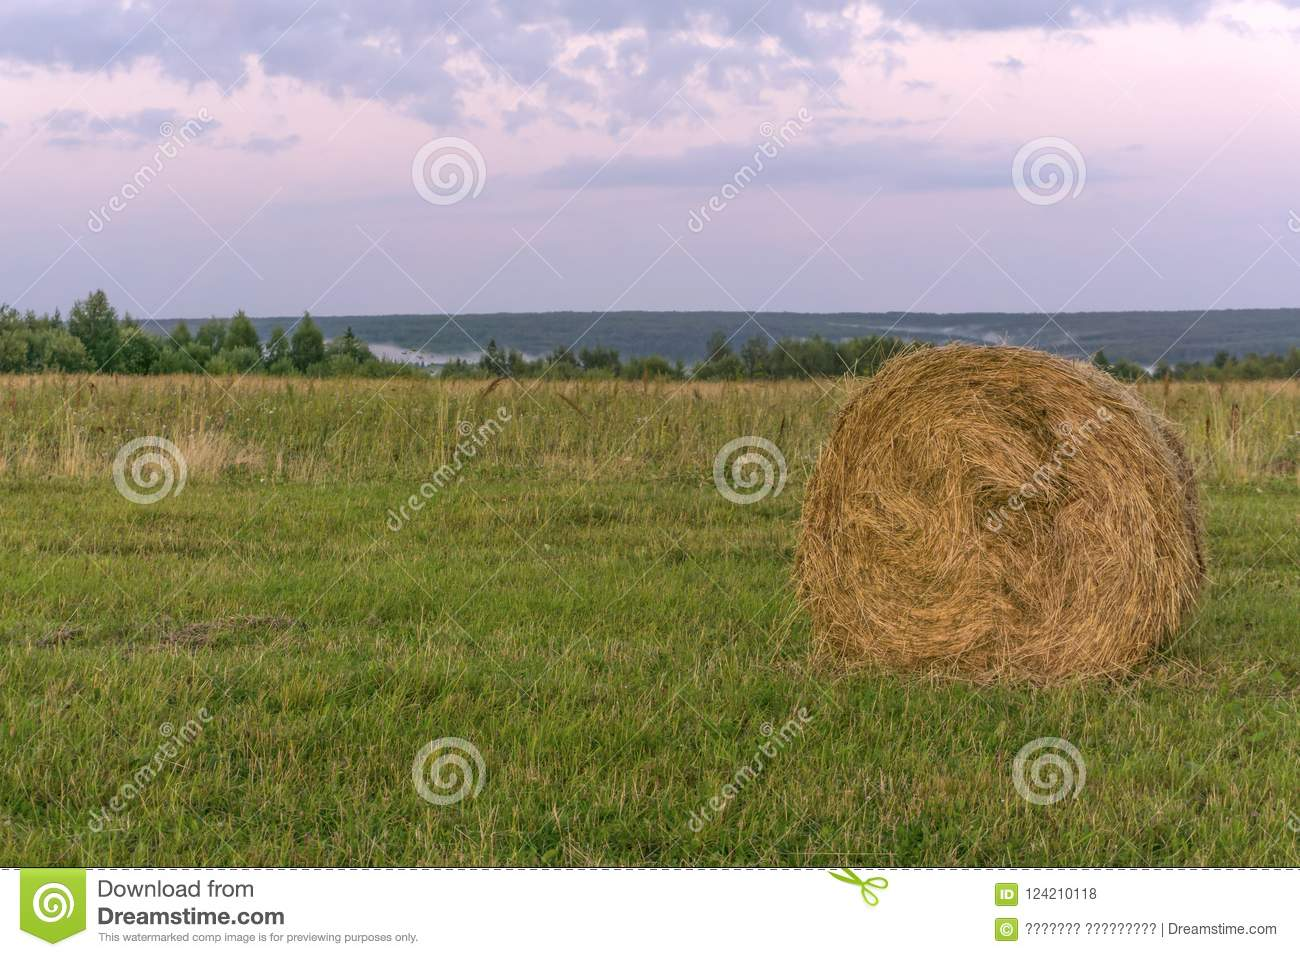 Round bale of hay on a beveled meadow